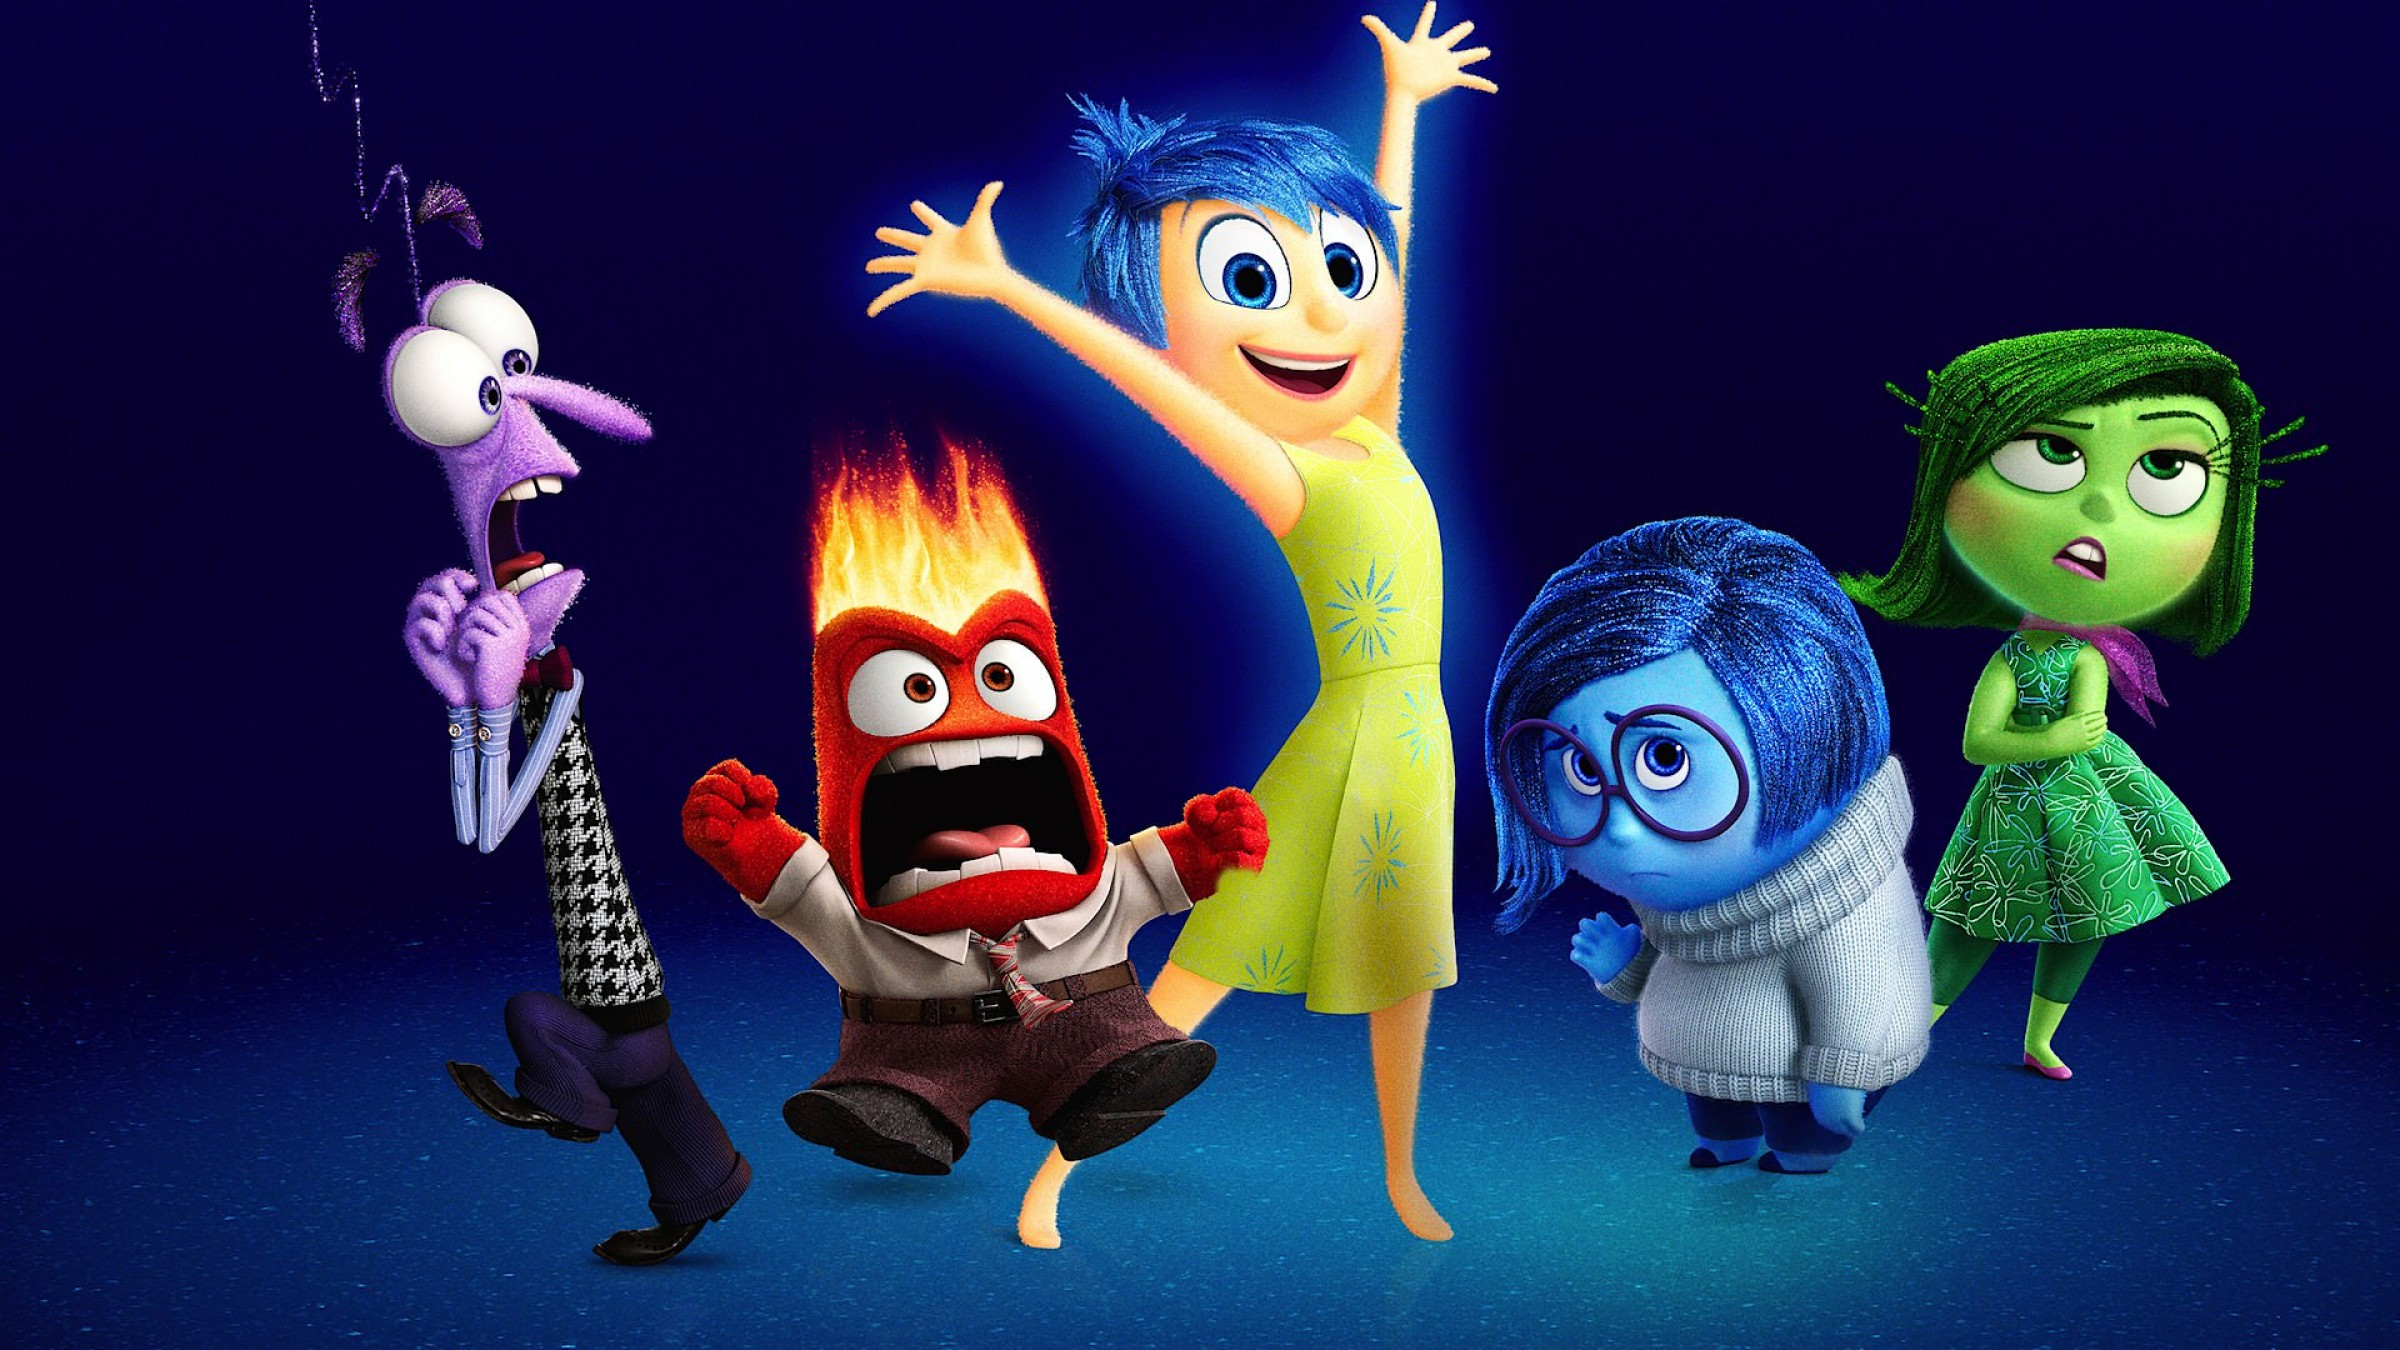 'Inside Out' Screenplay Now Available For Your Consideration